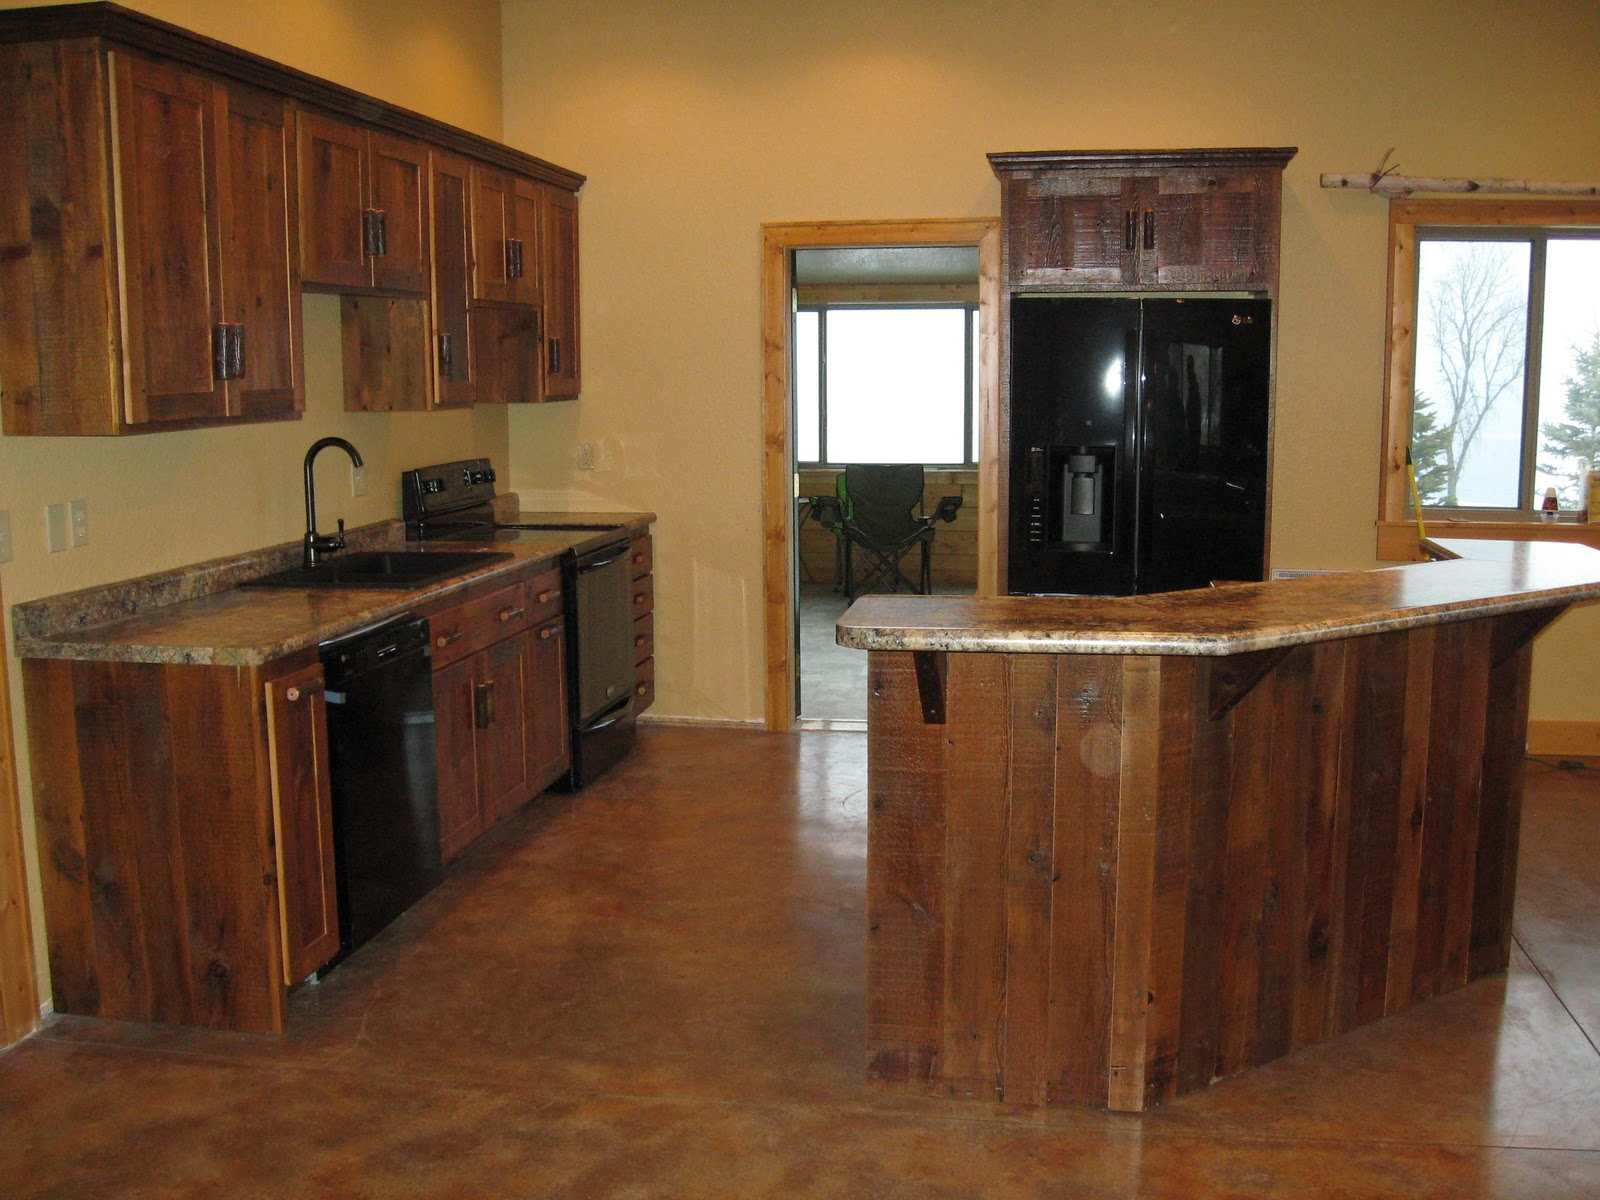 Wooden Rustic Kitchen Cabinets photo - 2